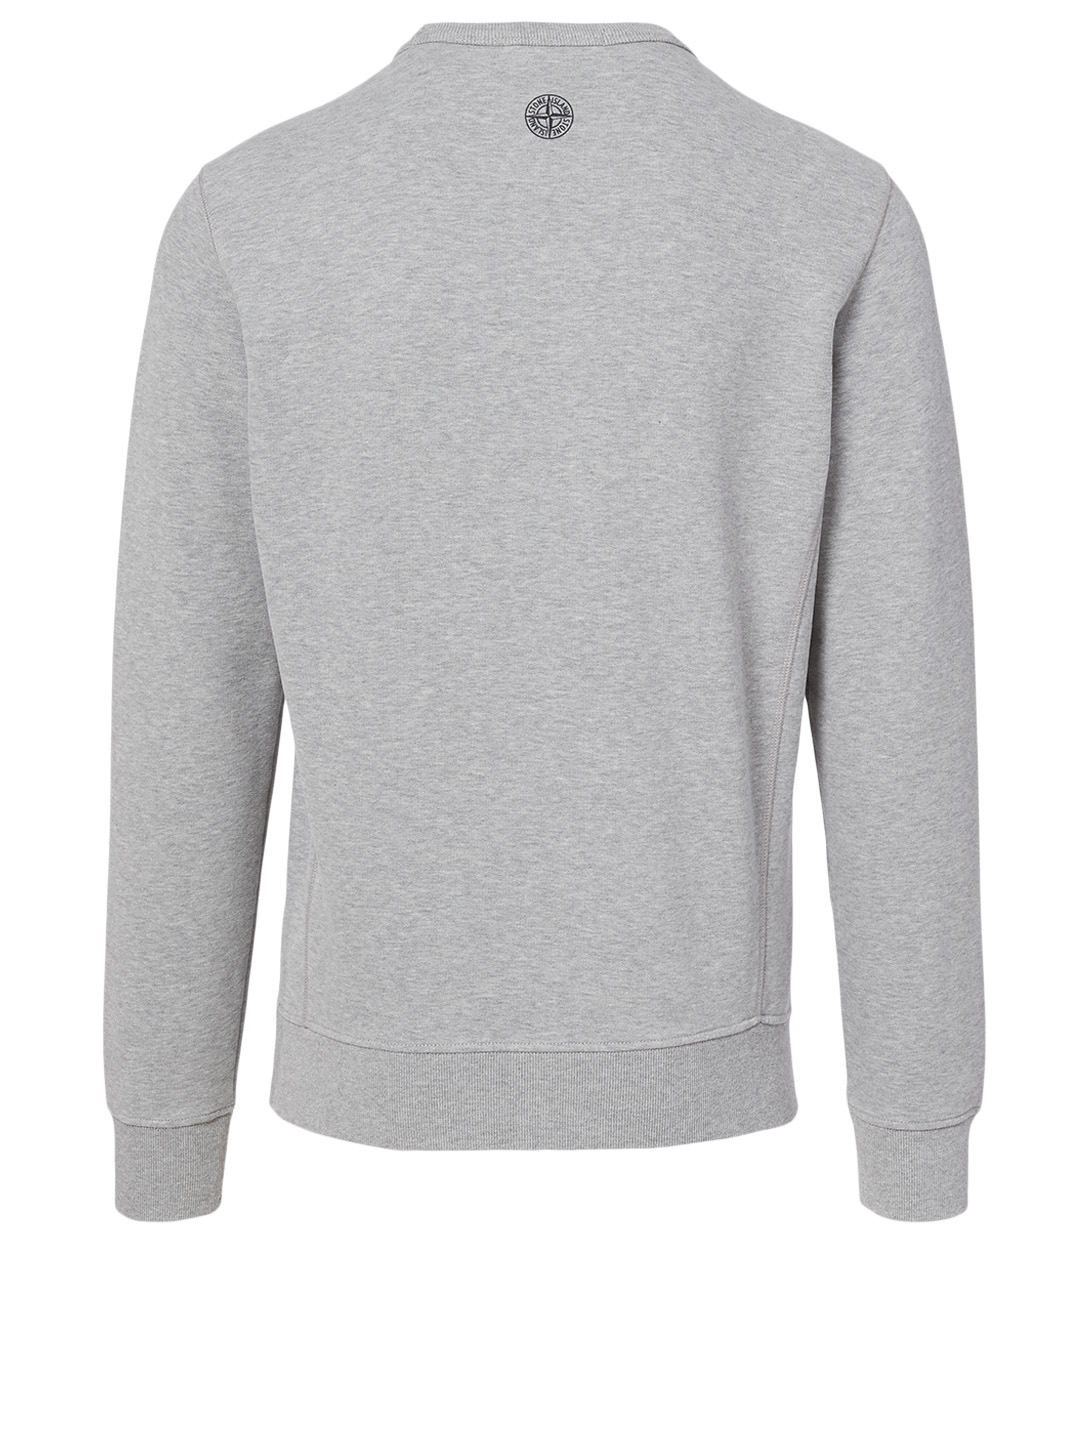 STONE ISLAND Cotton Sweatshirt With Faded Logo Men's Grey